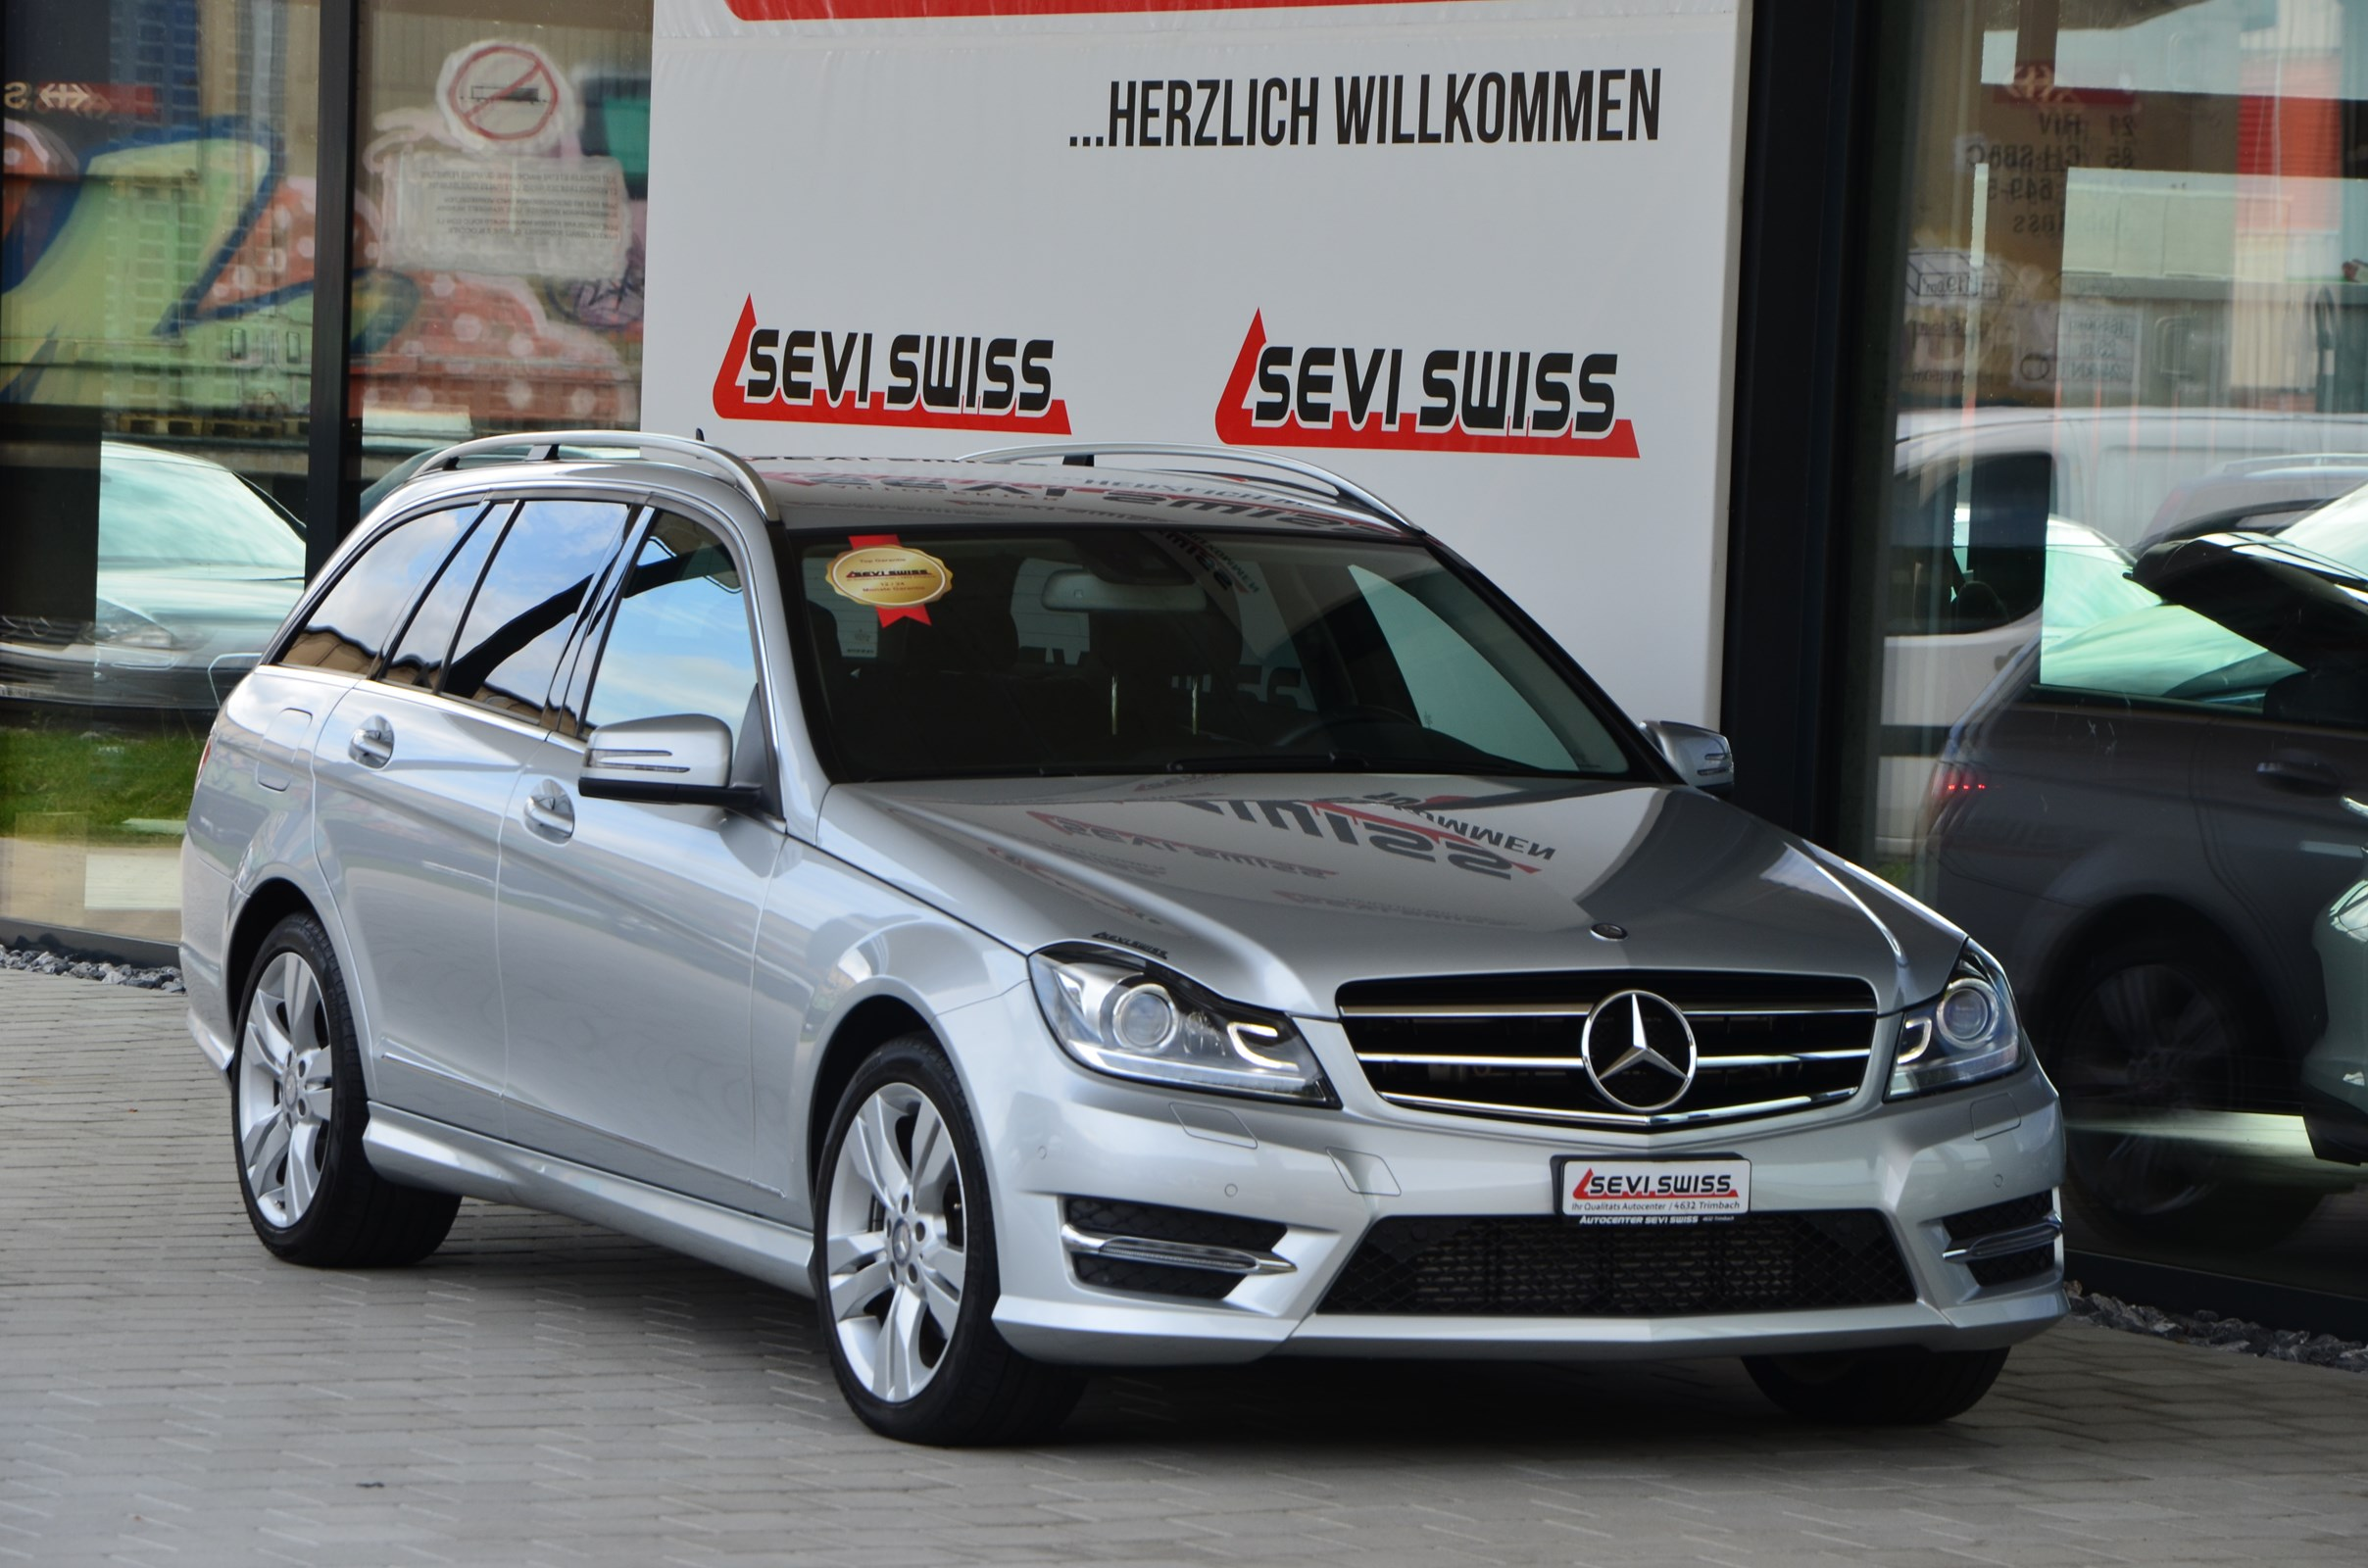 estate Mercedes-Benz C-Klasse C 250 CDI Athletic Edition AMG Optik Paket 4Matic 7G-Tronic